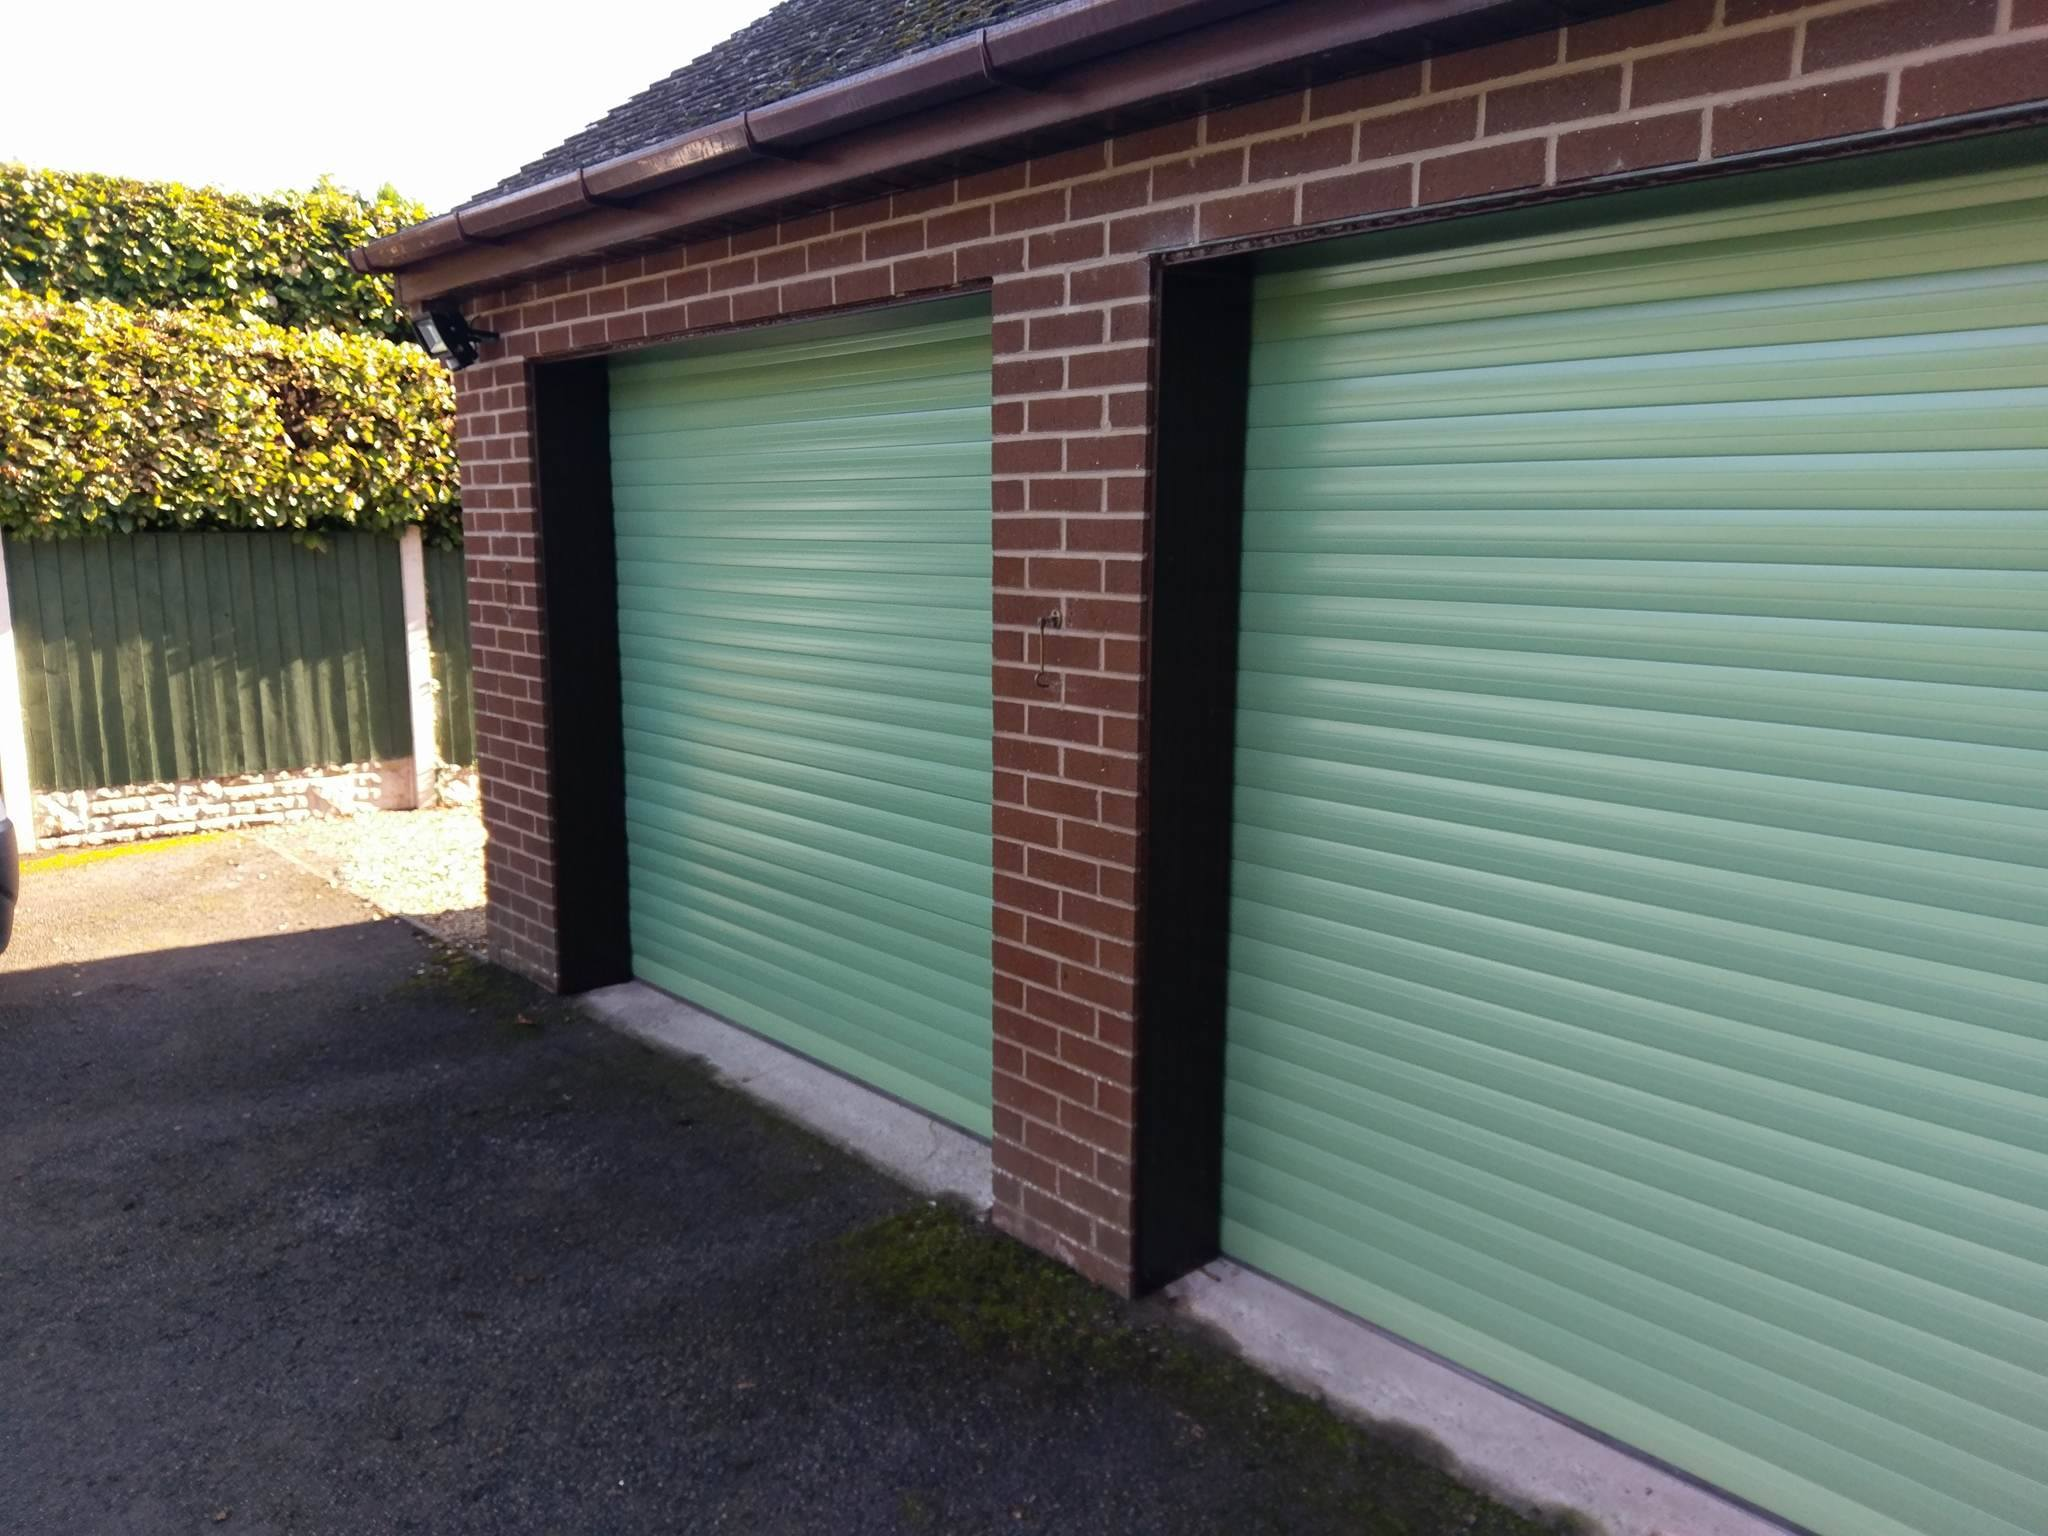 Aluroll Classic insulated roller doors in Sage Green